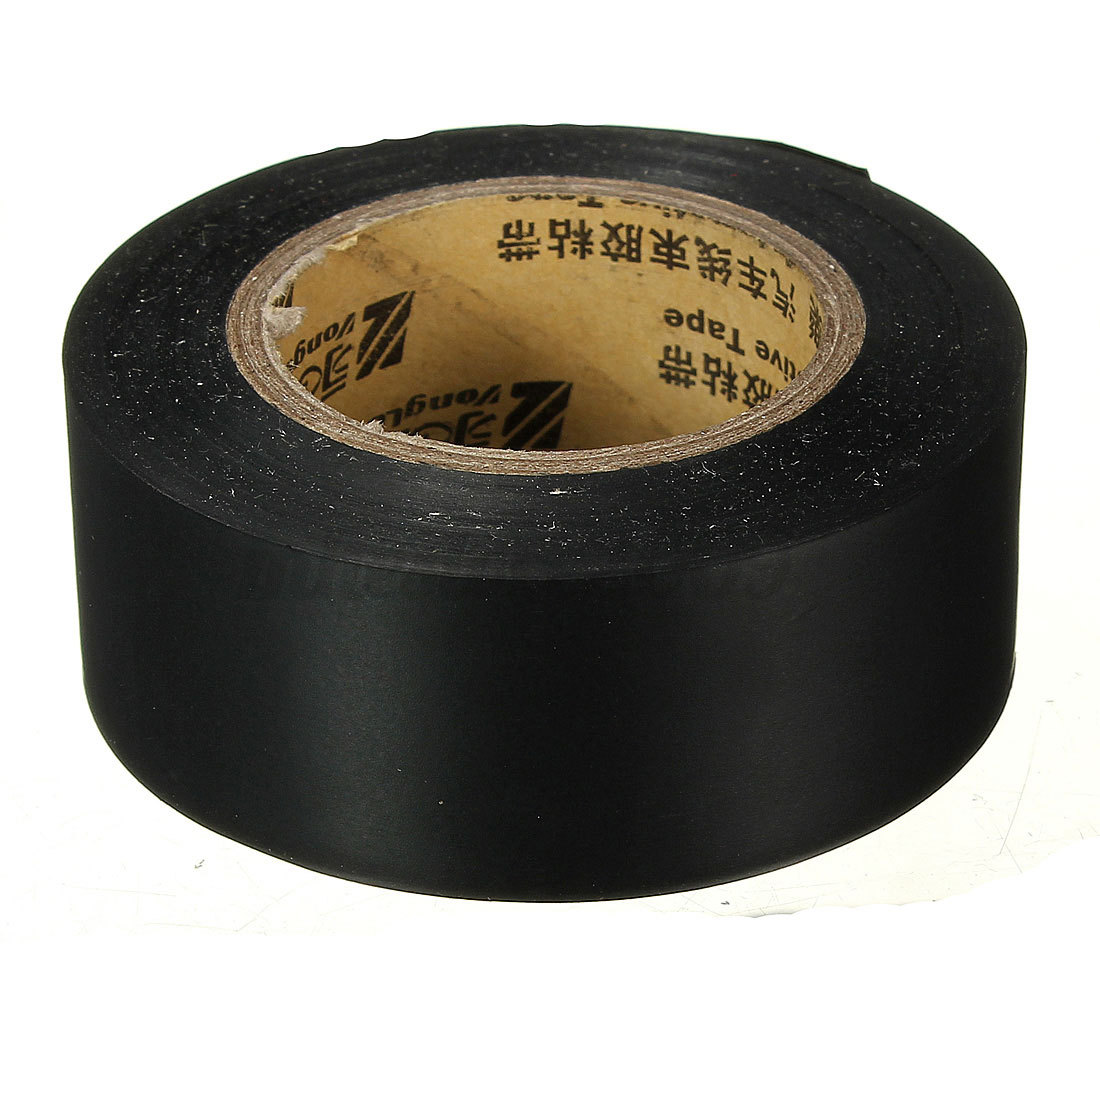 Classic Car Wiring Loom Tape Solutions Automotive Black Harness Roll Pvc Motor 18mx10 17 18 19mm